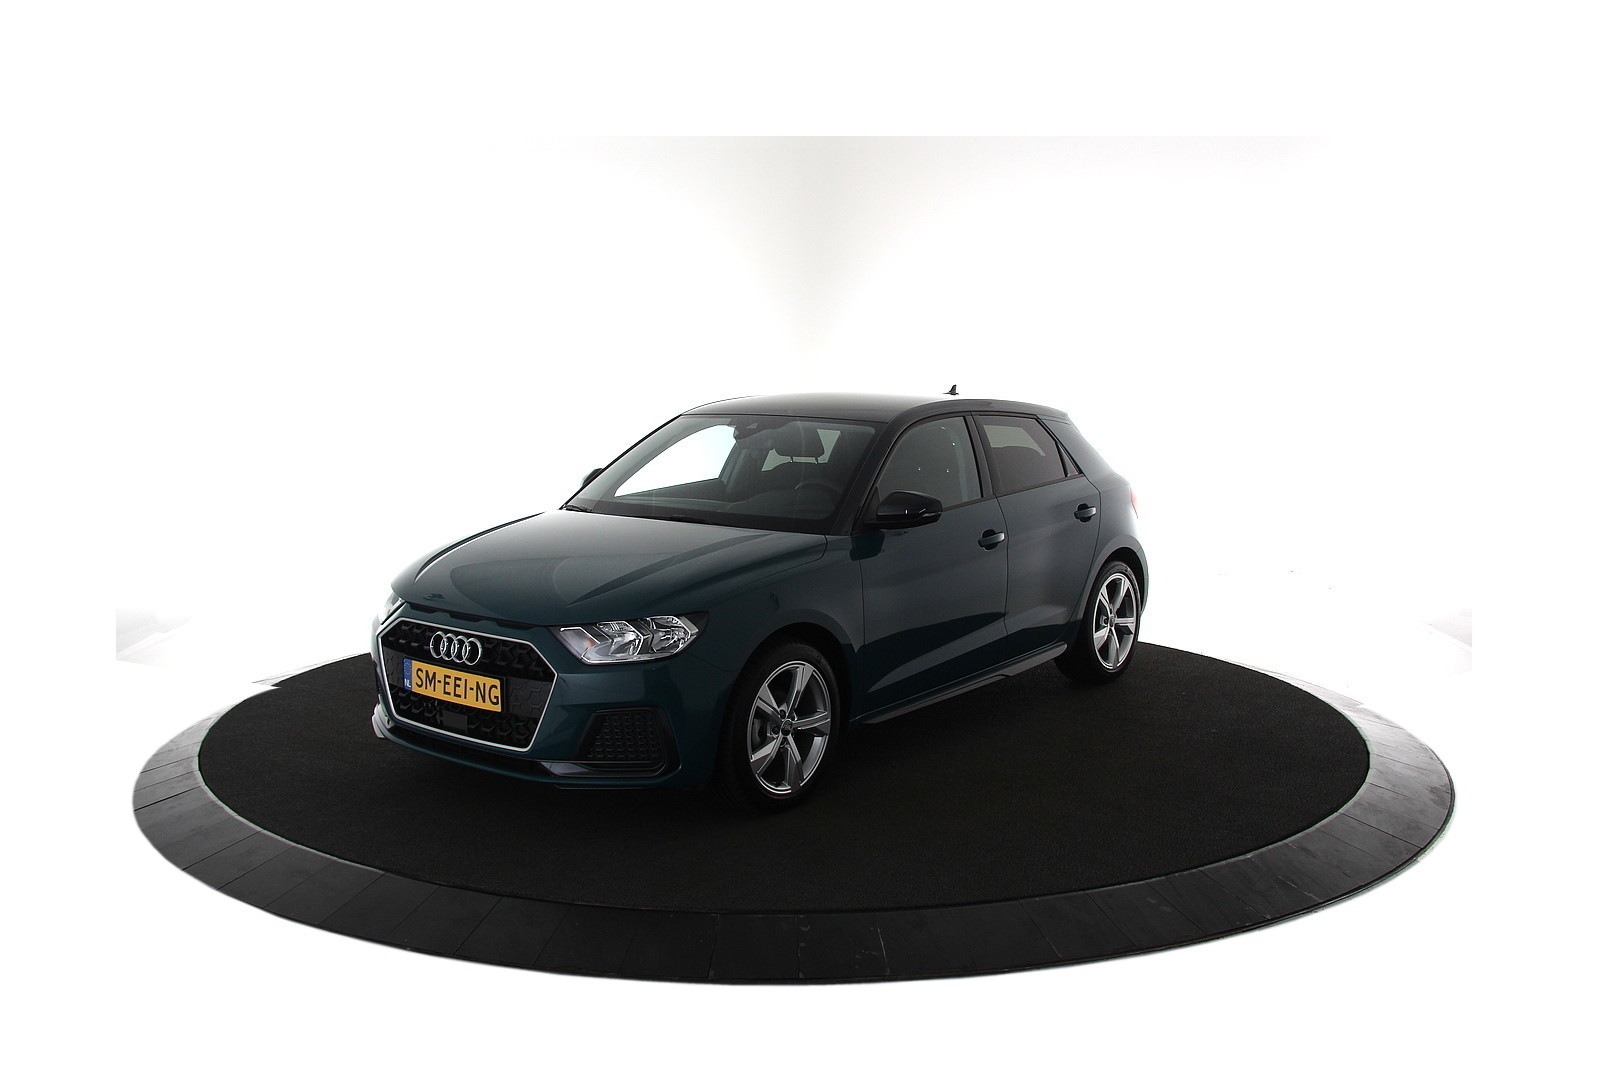 Audi A1 Sportback 25 TFSI Advanced S-Tronic